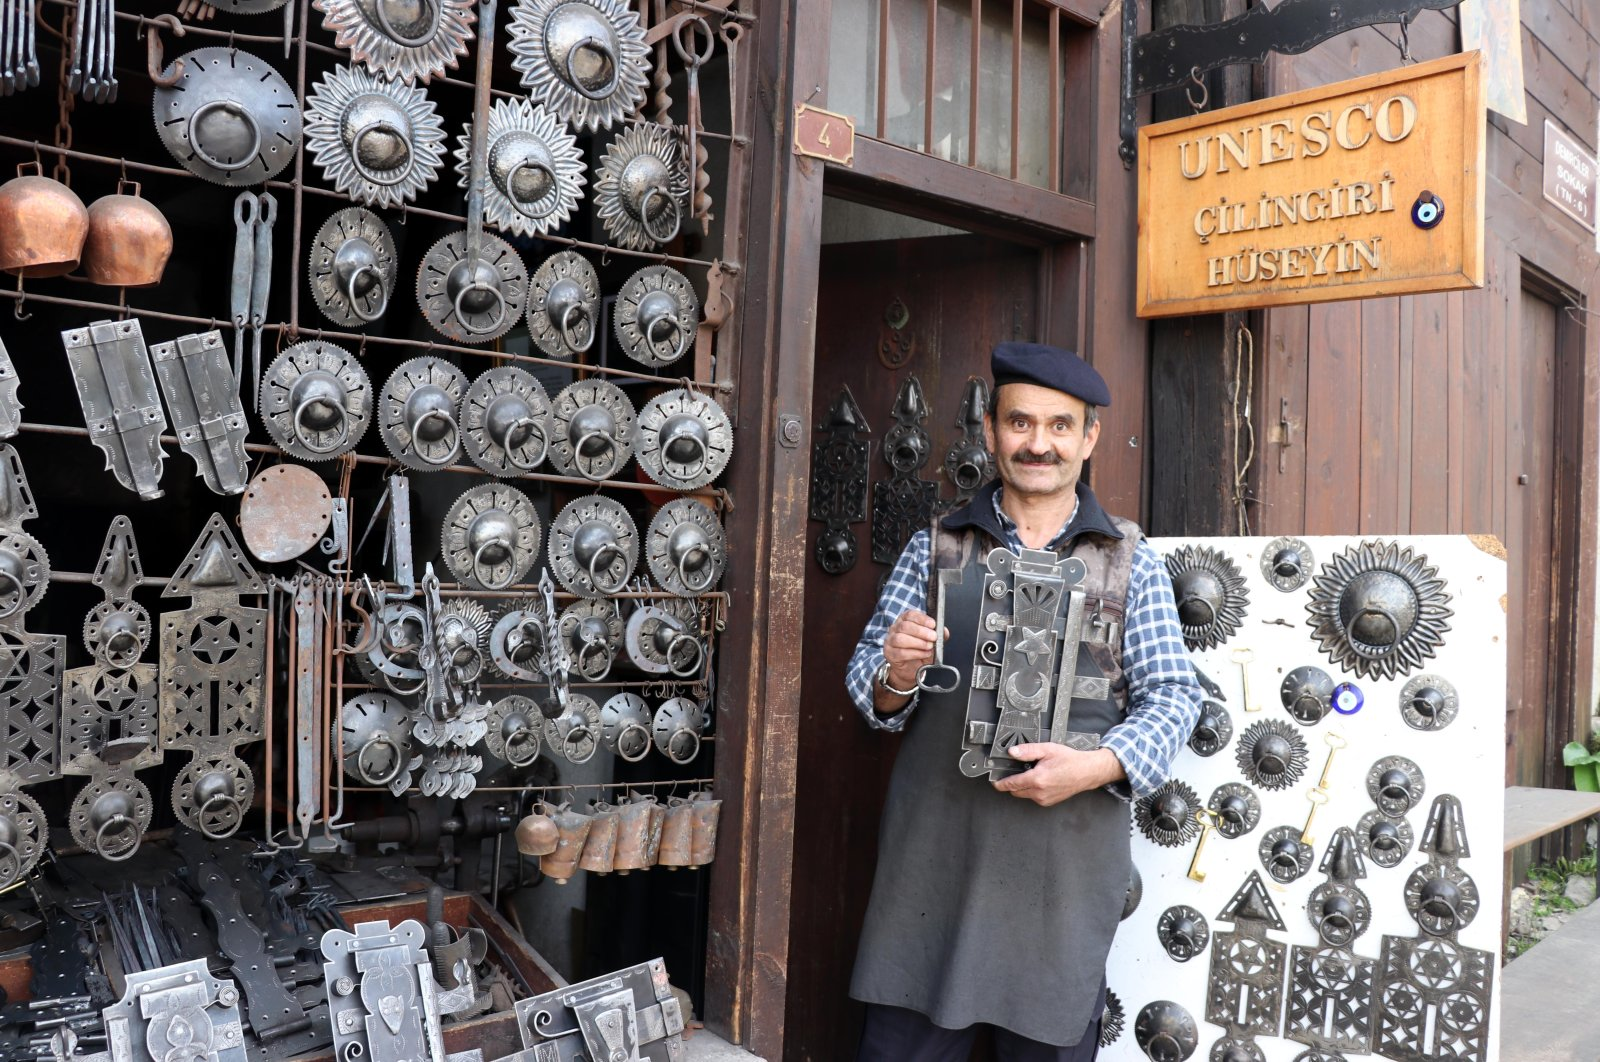 Master locksmith Hüseyin Şahin Özdemir poses with some of his works in front of his workshop on May 8, 2020 in Safranbolu. (AA Photo)